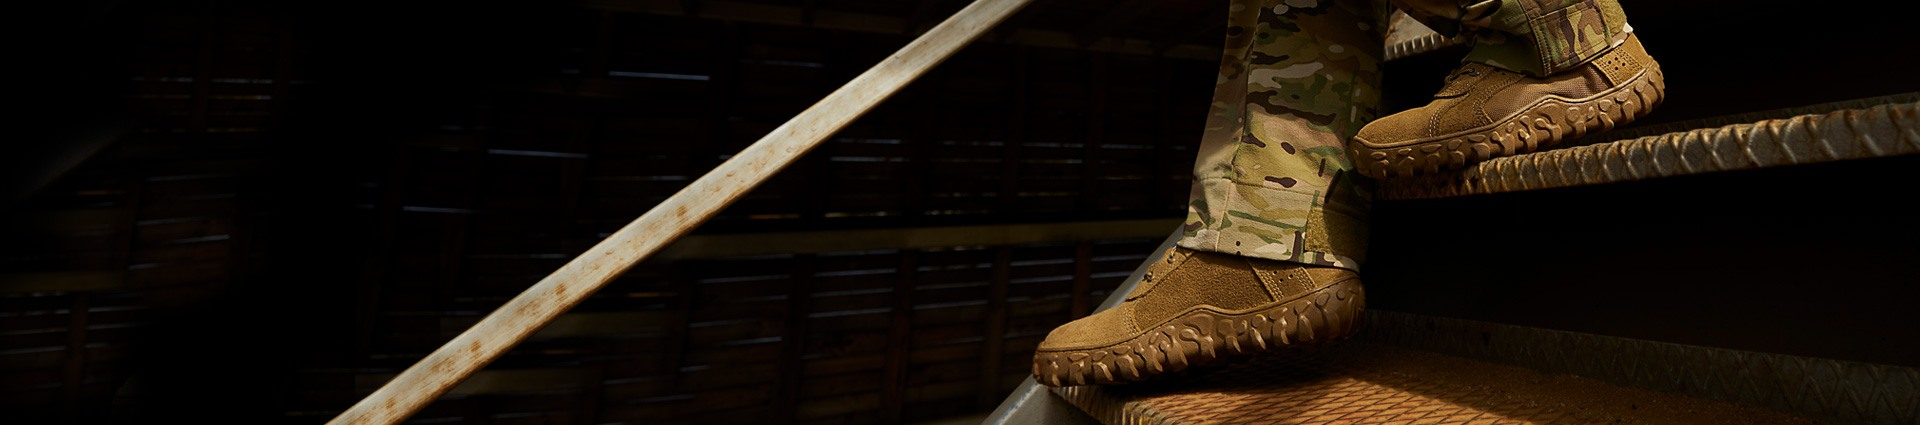 rocky s2v military tactical boots